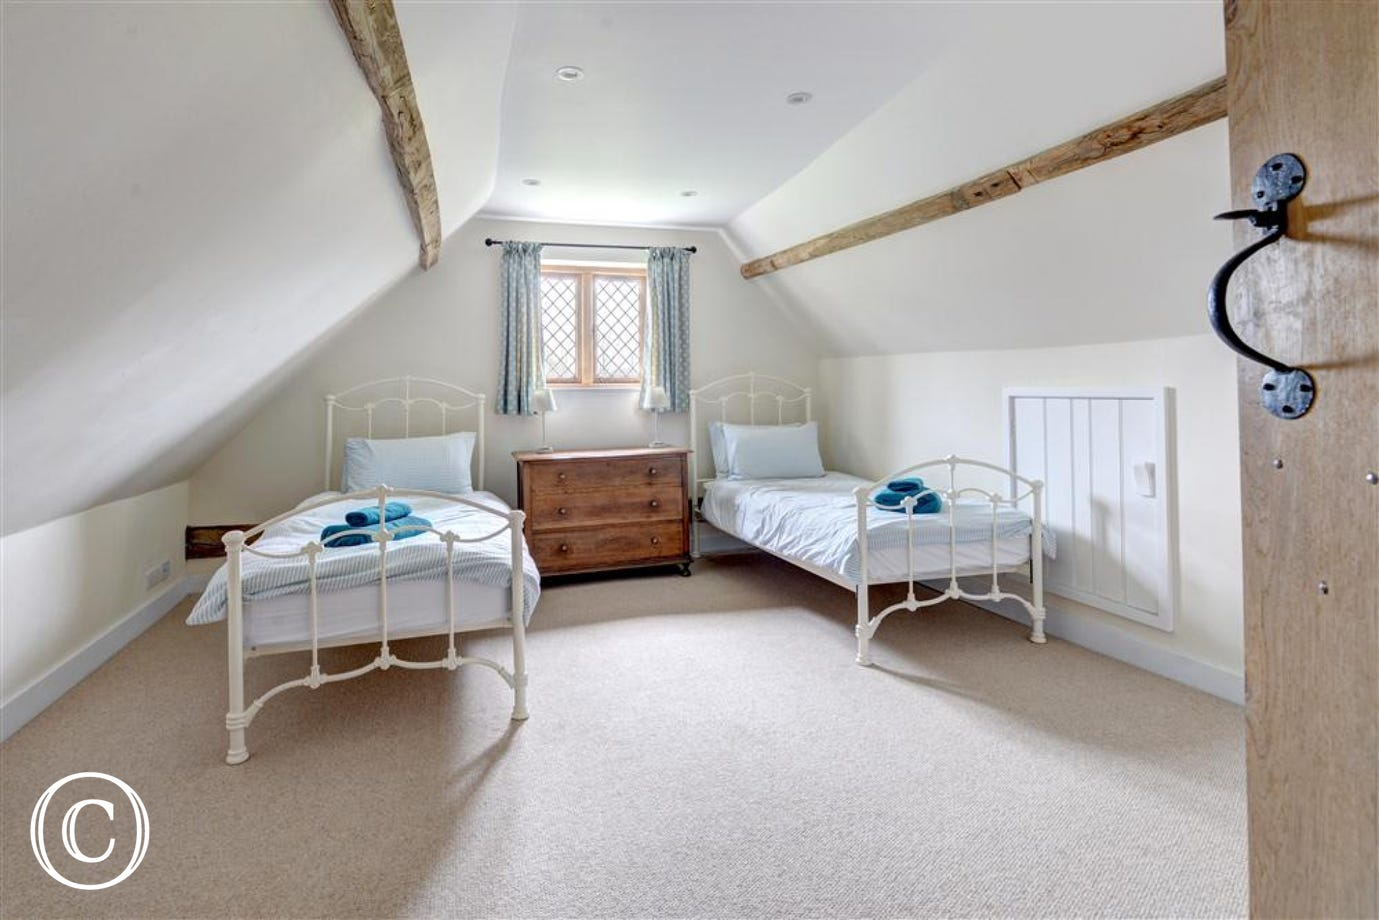 A sweet room with two single beds and glorious views over the fields.